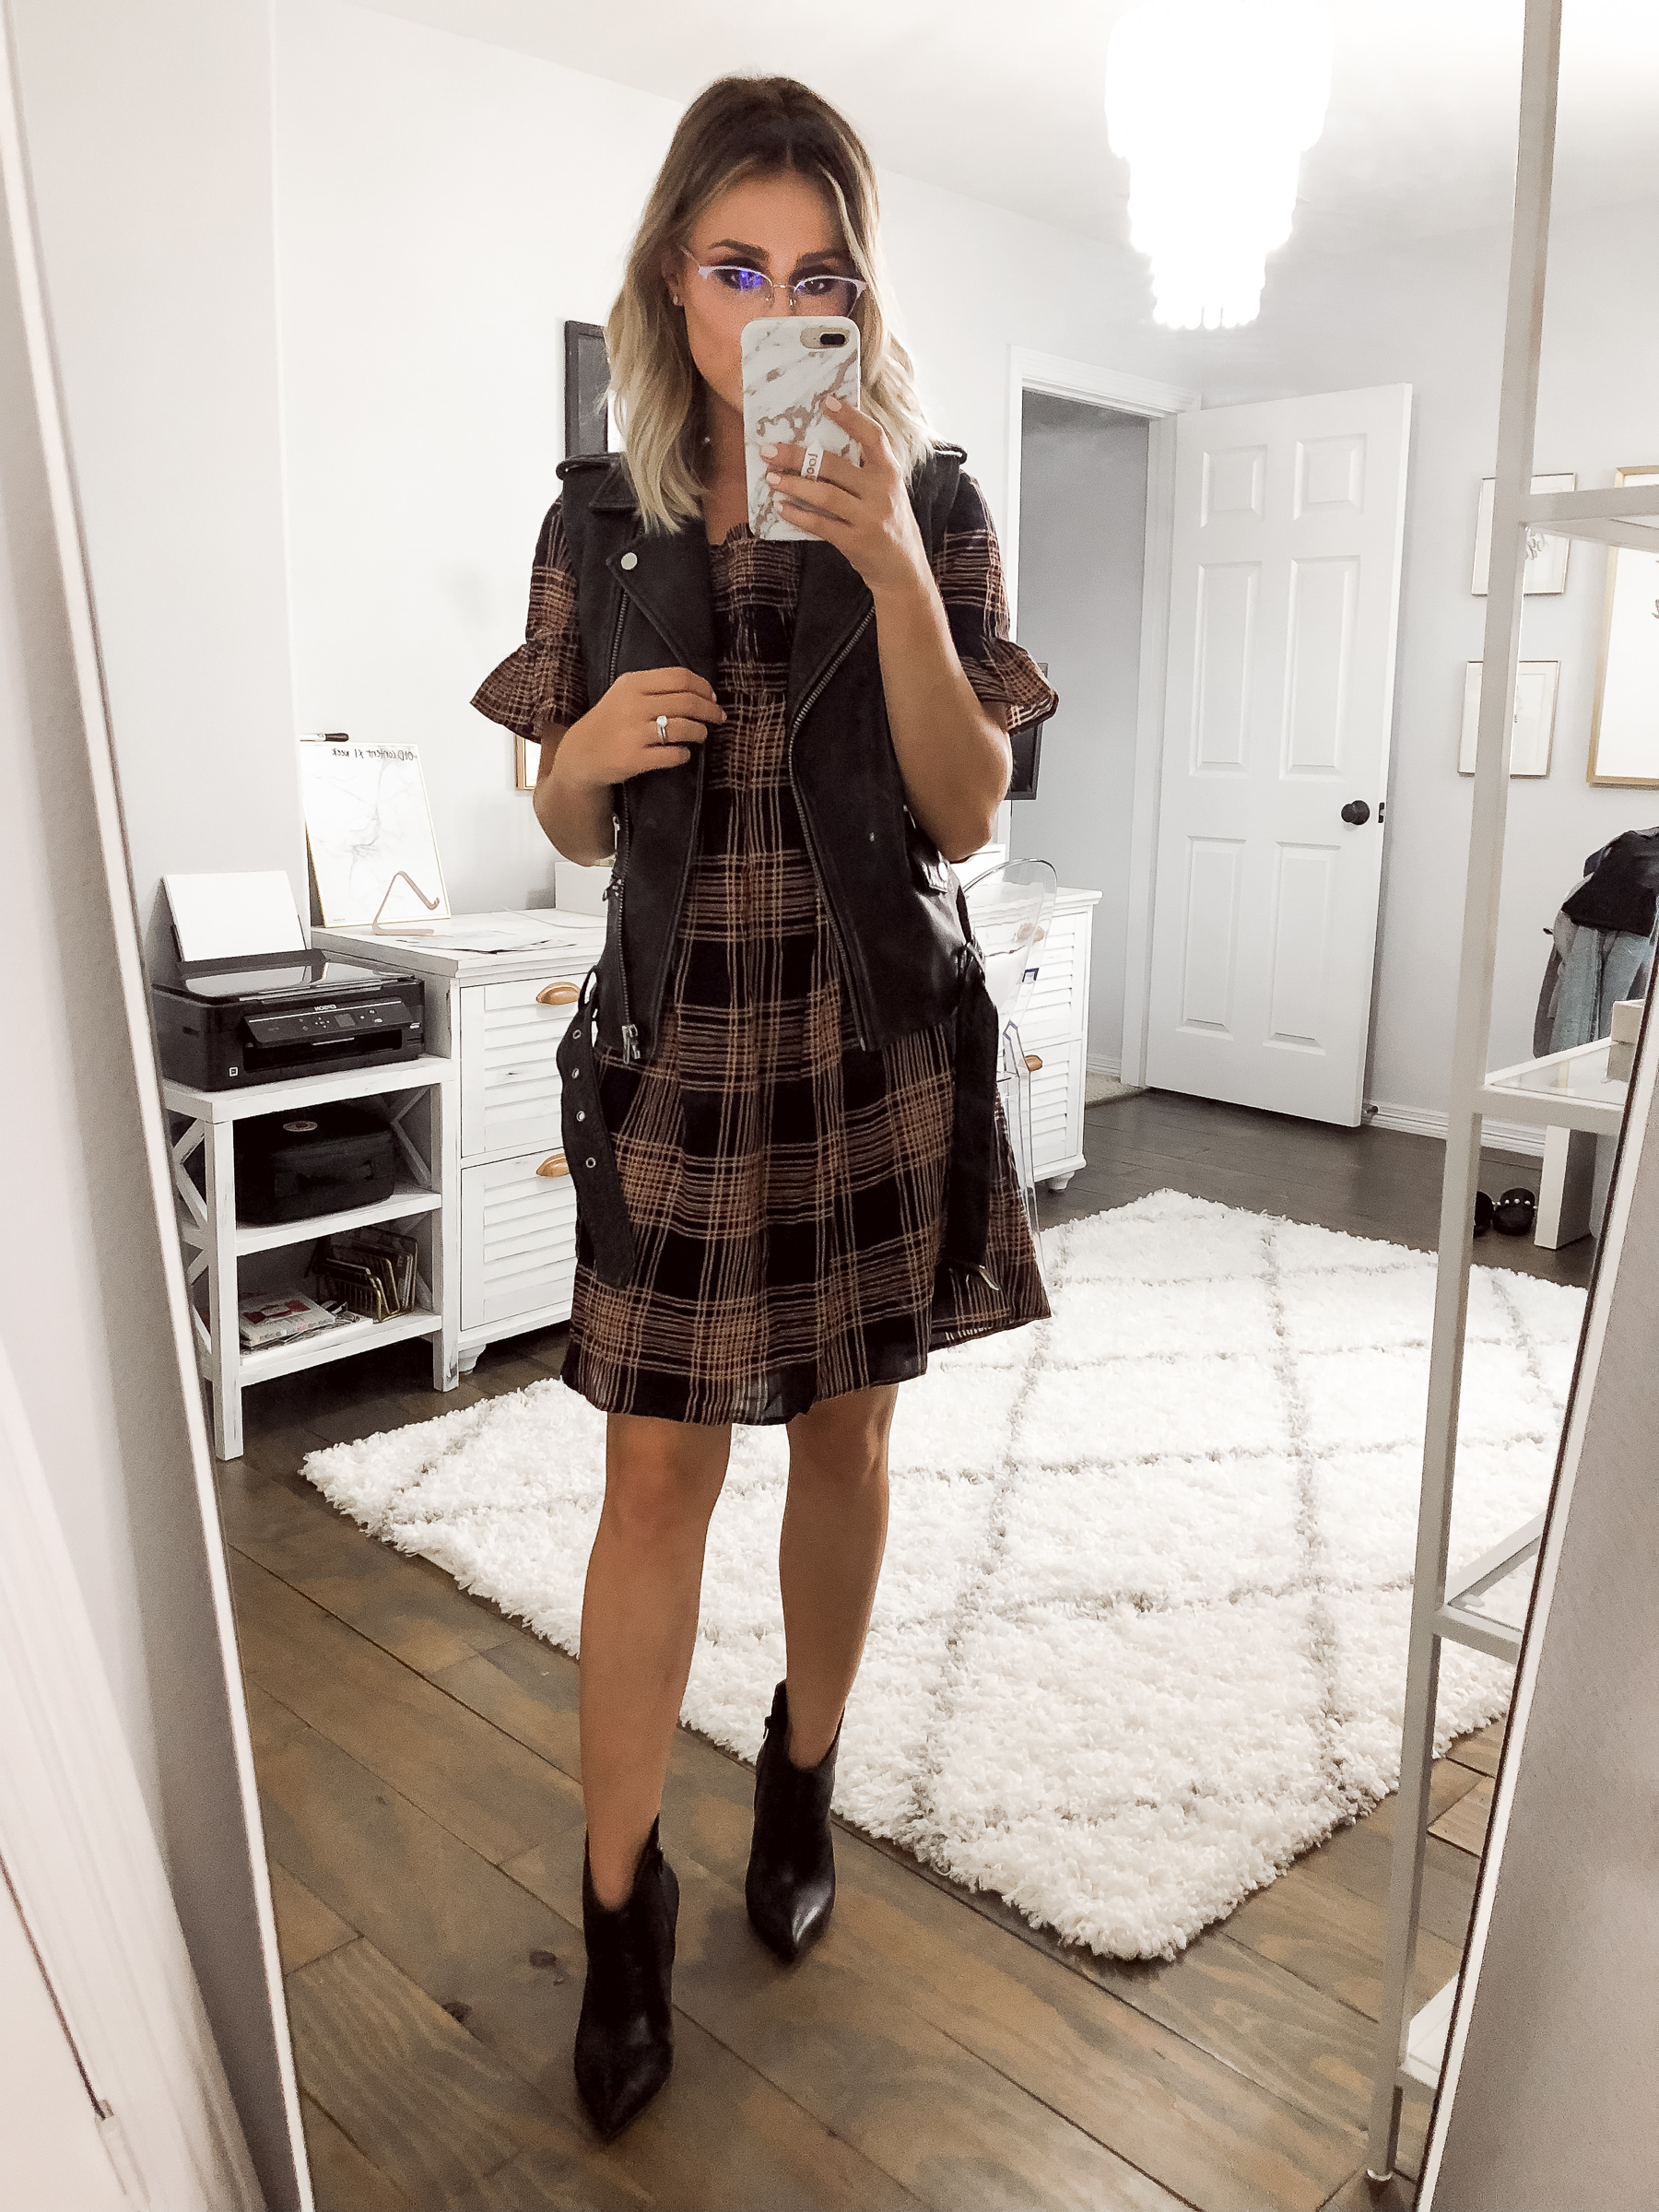 Houston Fashion blogger Uptown with Elly Brown wears a plaid dress with ankle boots